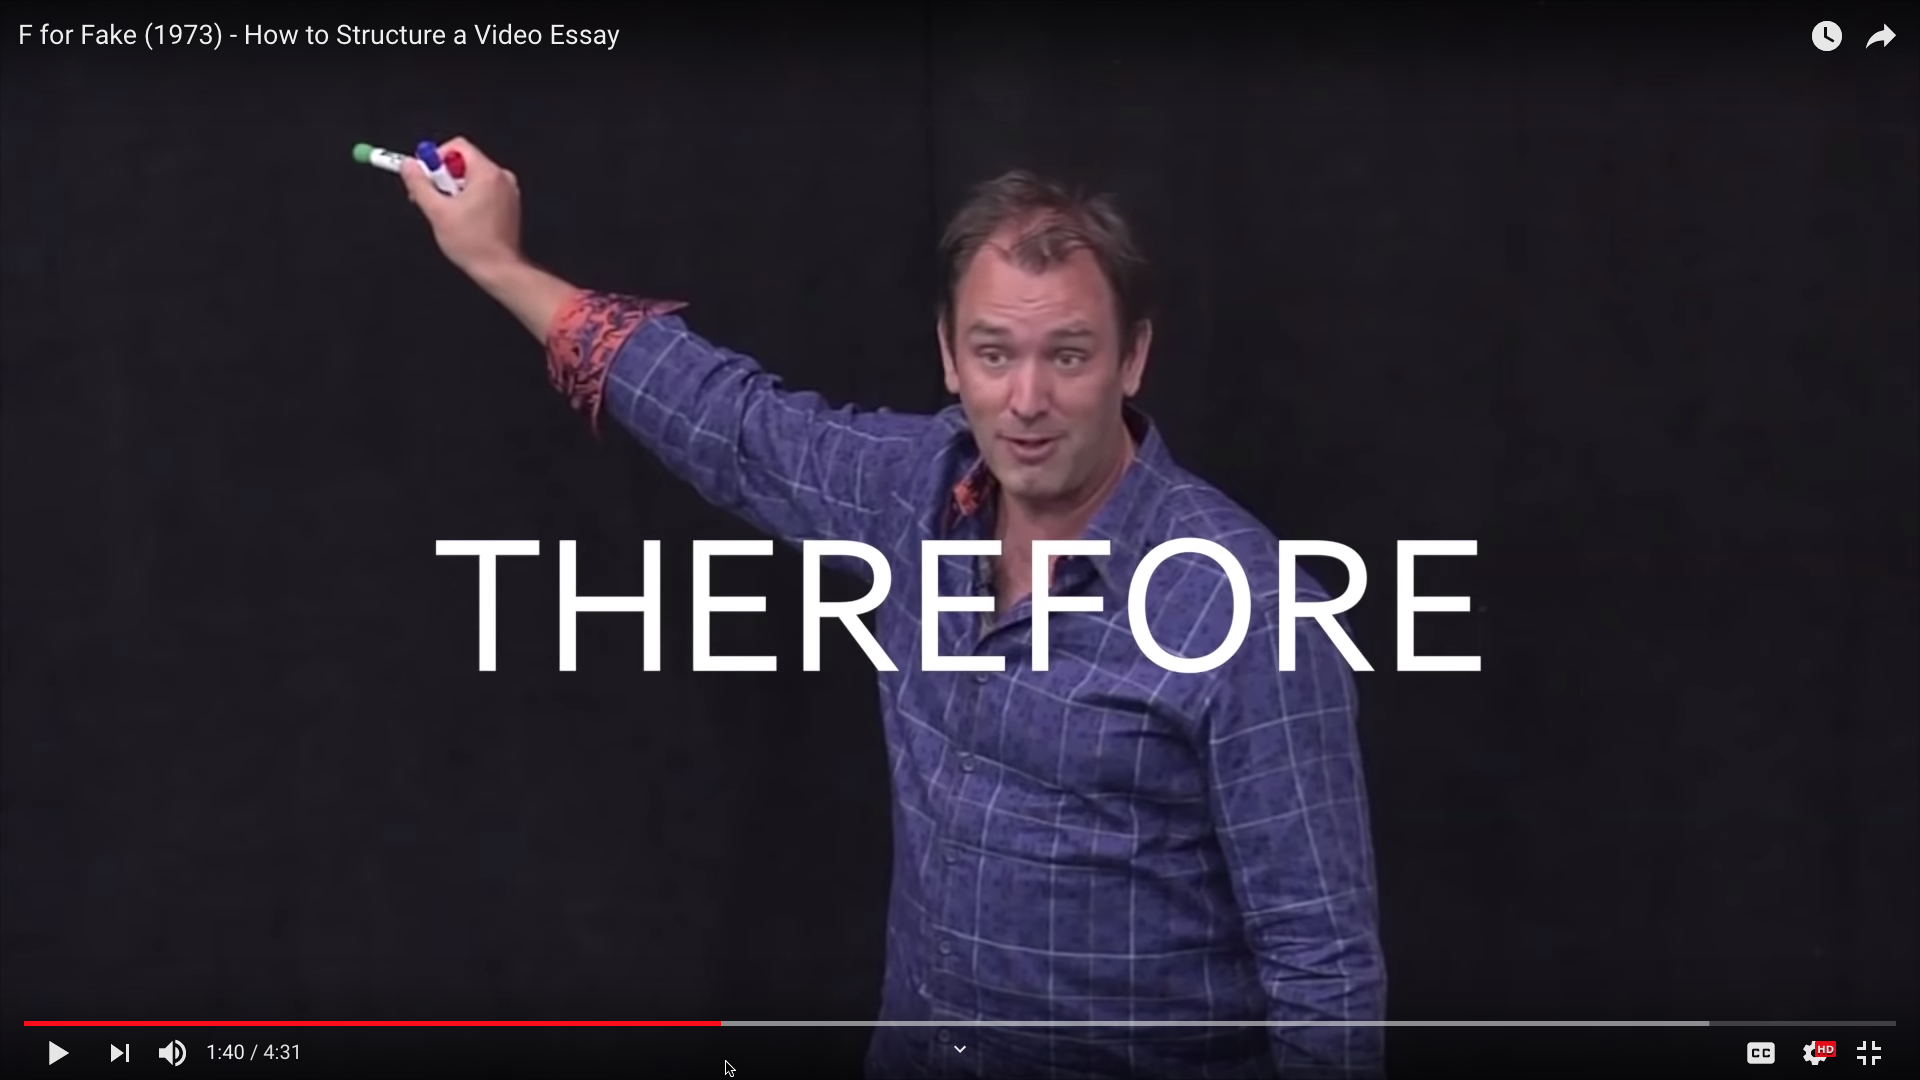 F to fake how to structure a video essay